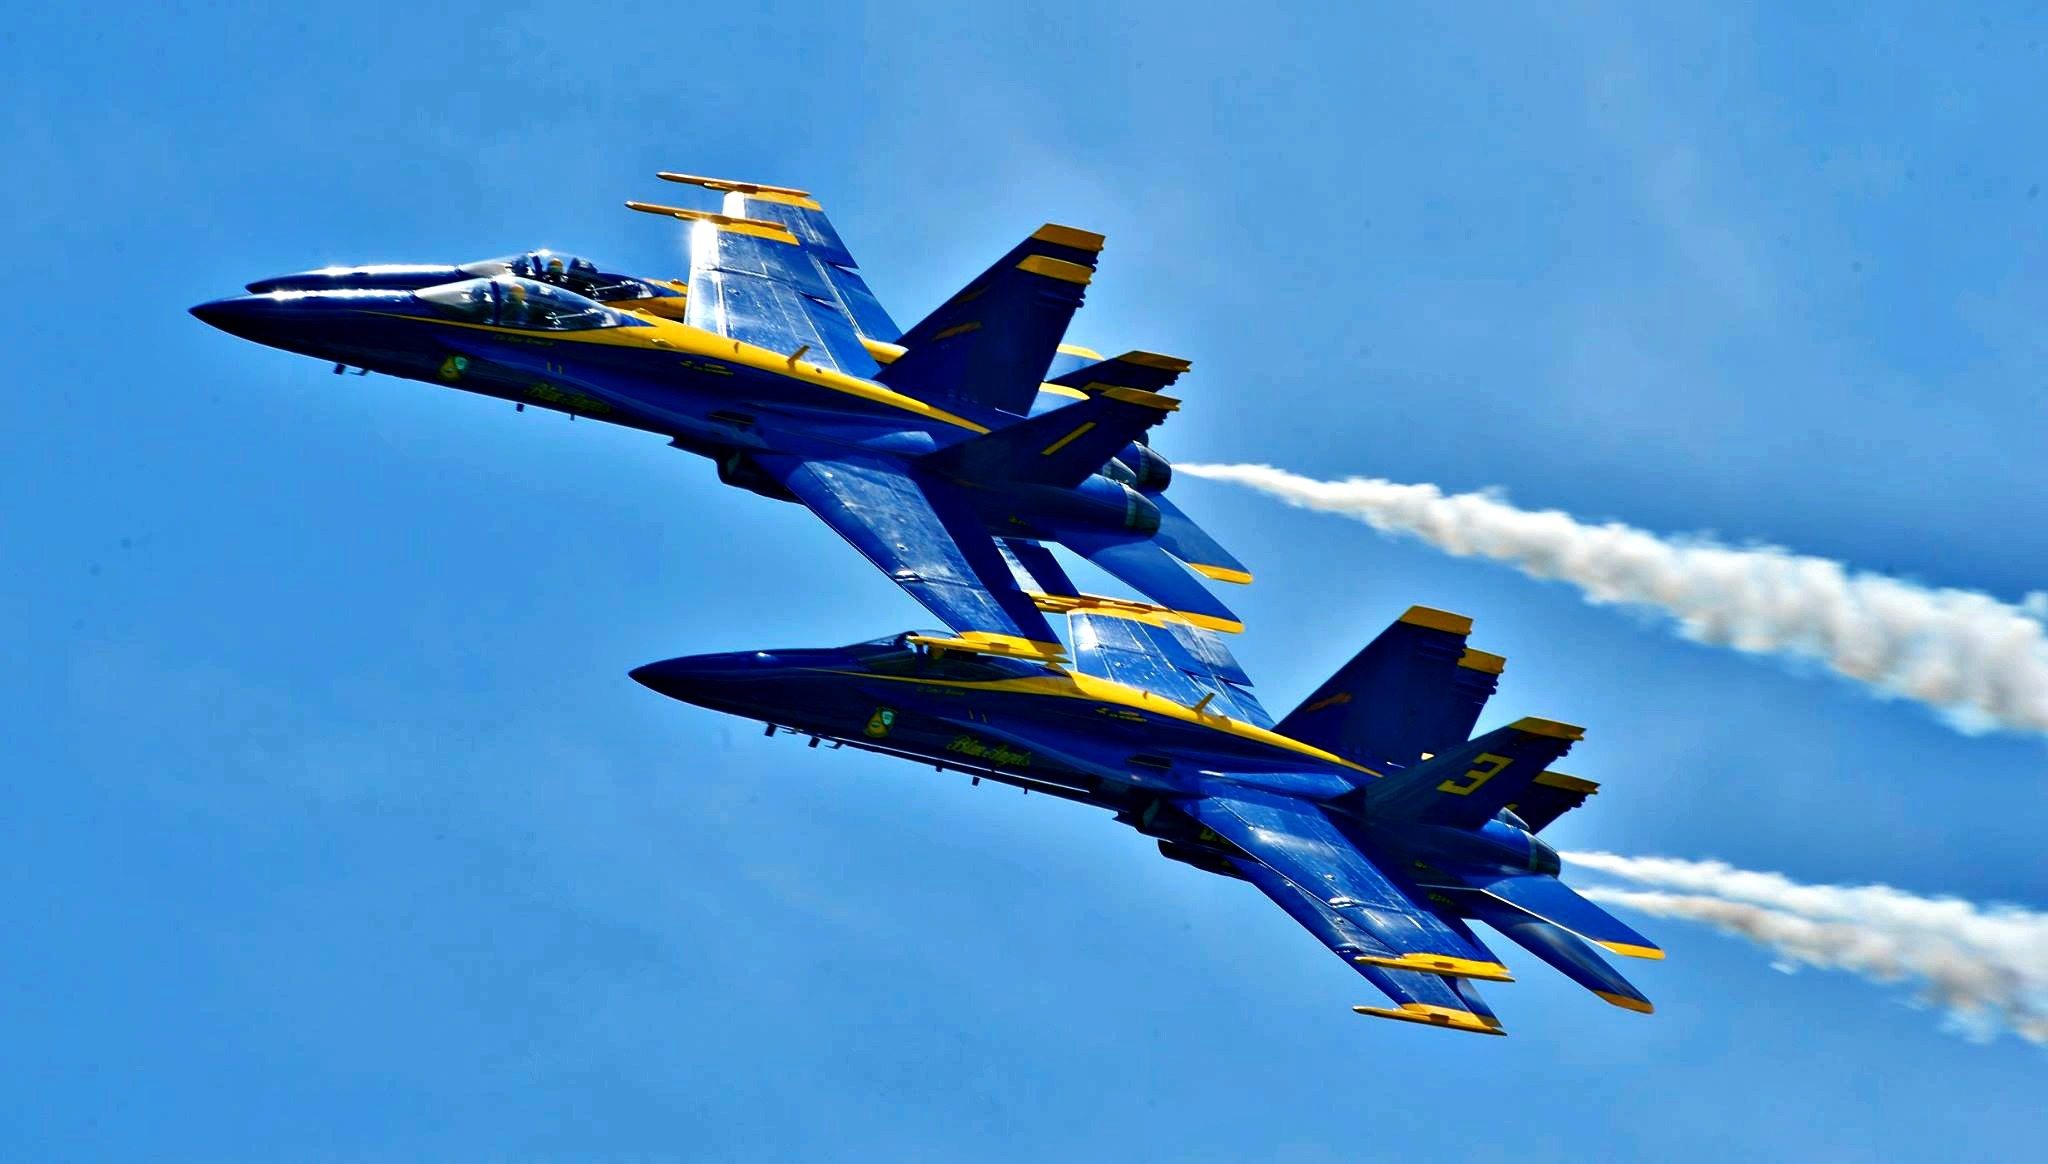 The Blue Angels flying in the Diamond 360 formation